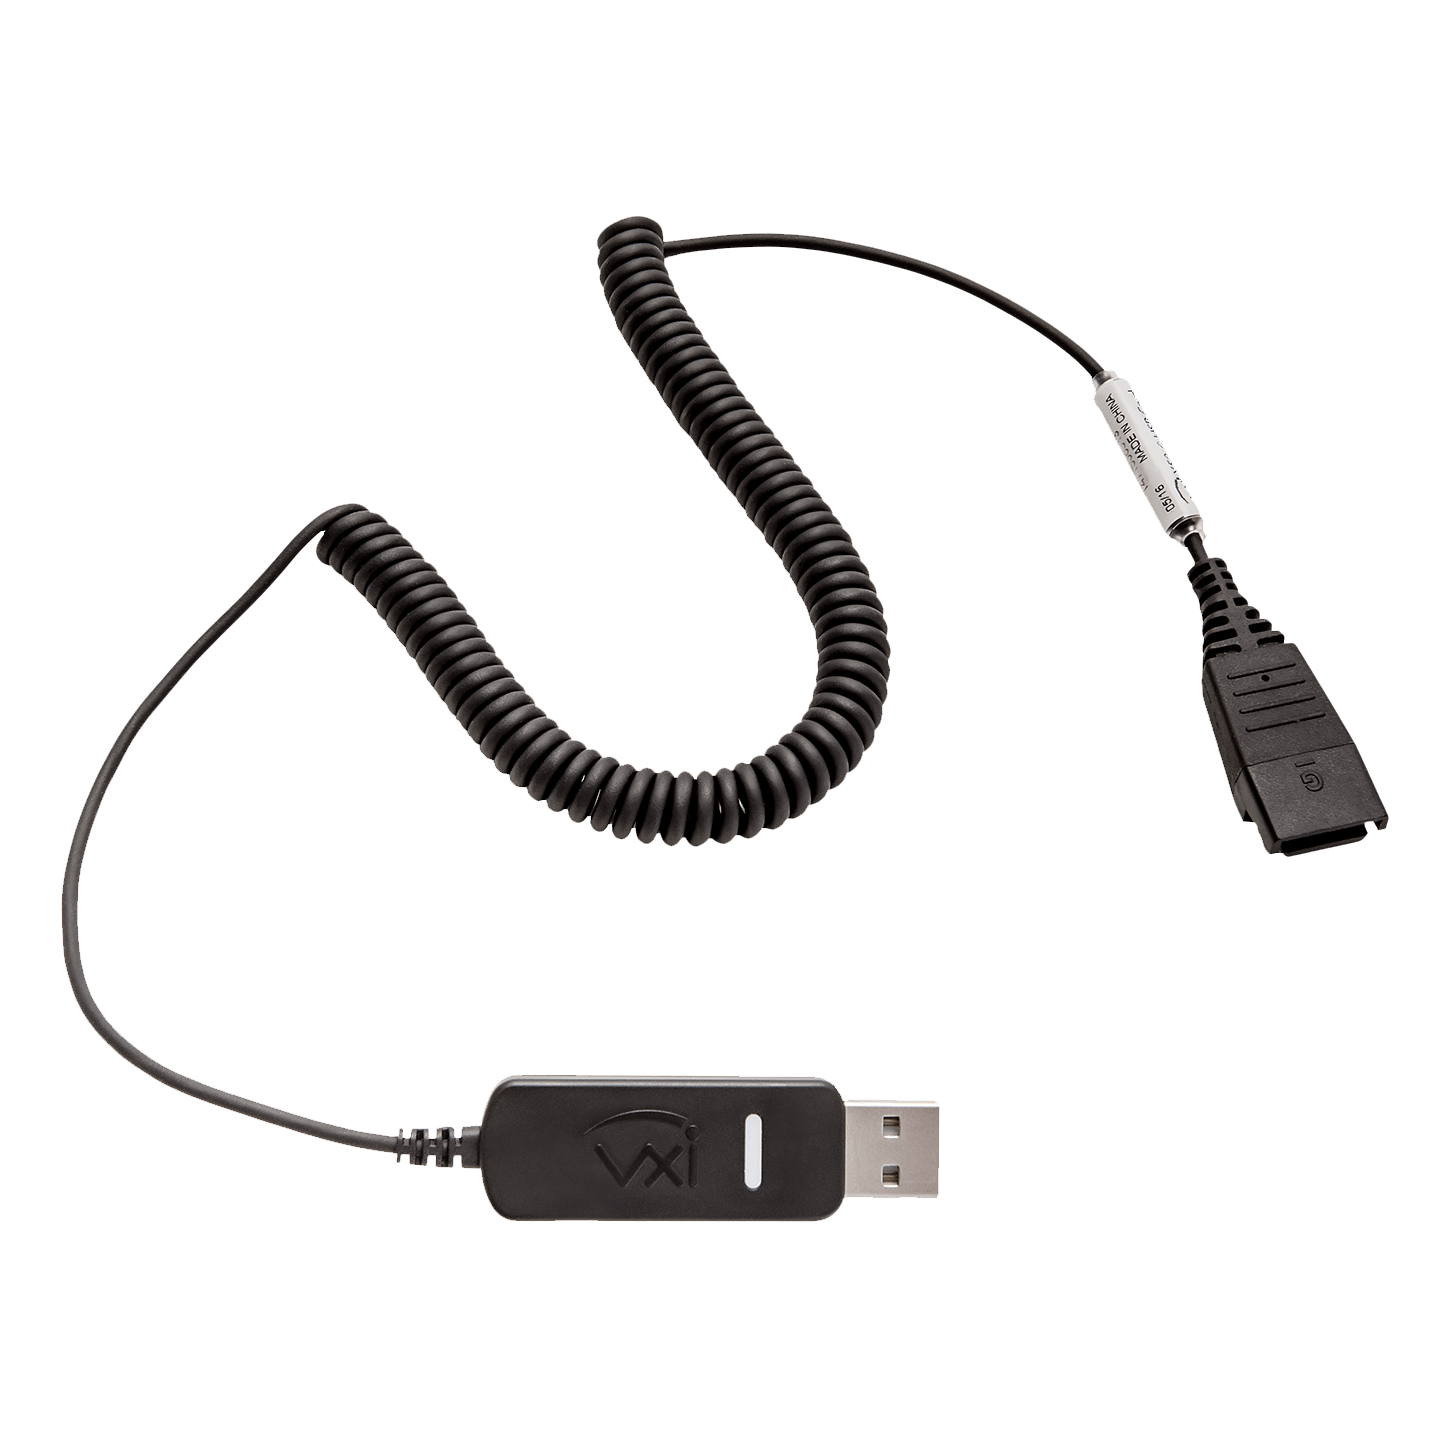 VXi Corded USB Adapter X50 -P